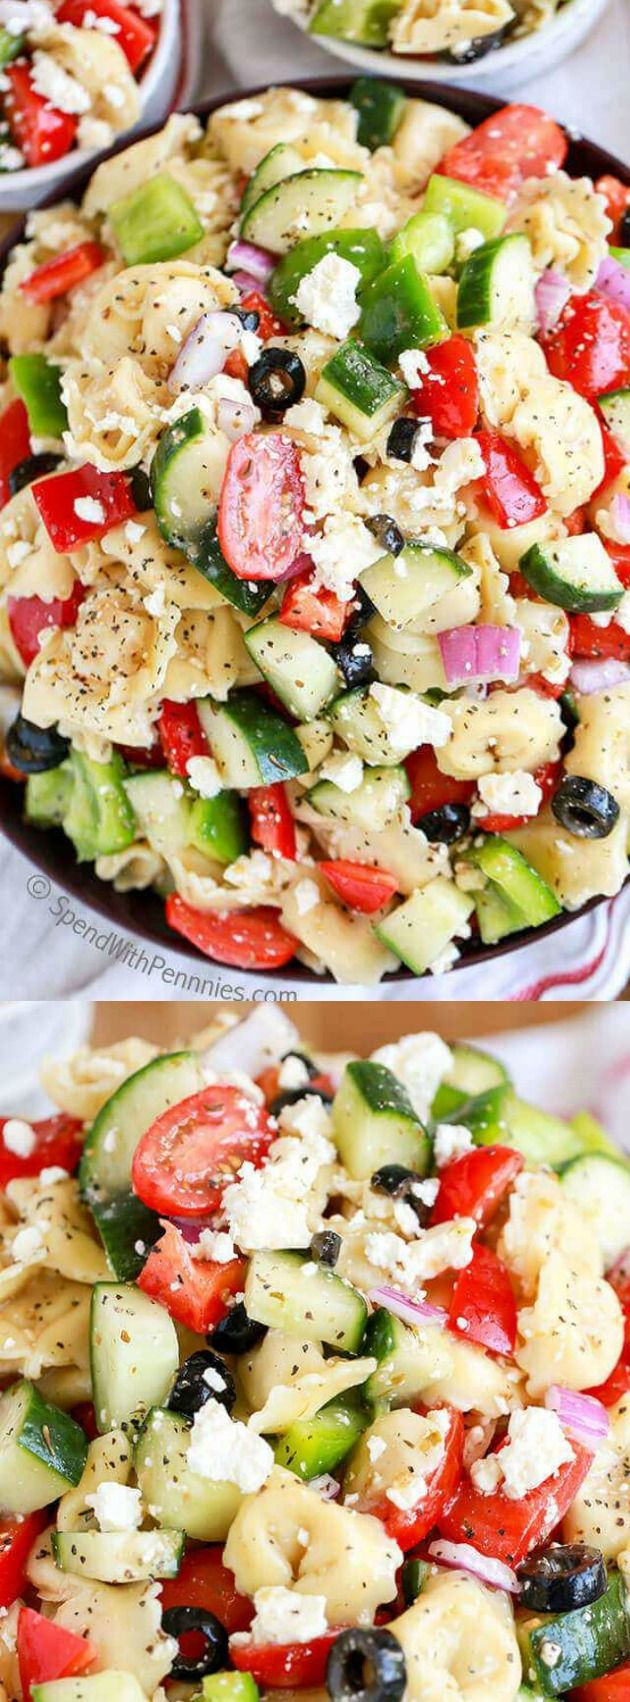 This Greek Tortellini Salad from Spend with Pennies has green peppers, fresh cucumbers, red, ripe tomatoes, and lots of cheese all mixed together!